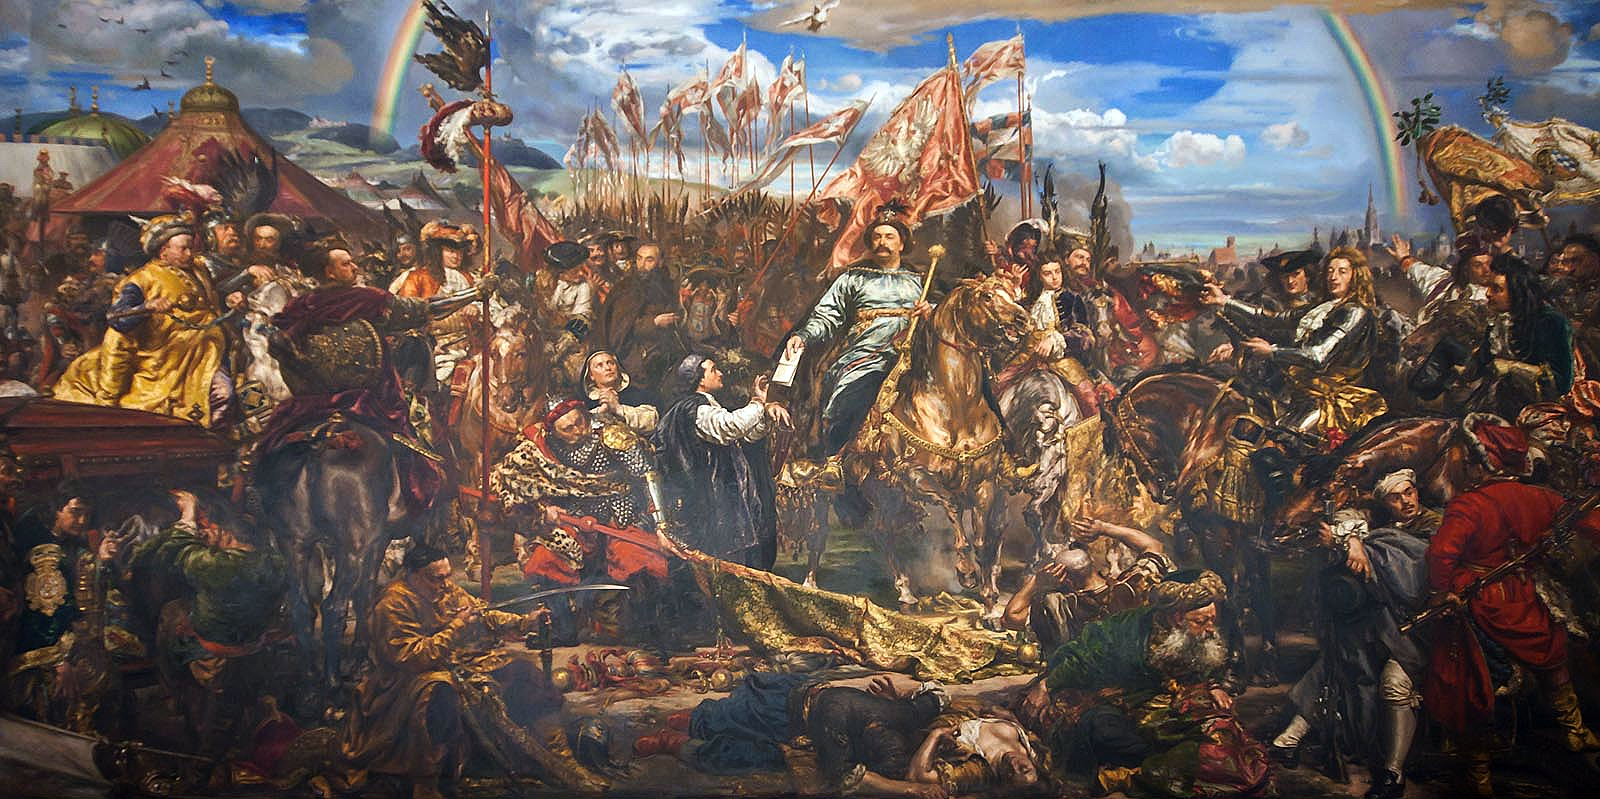 King_John_III_Sobieski_Sobieski_sending_Message_of_Victory_to_the_Pope,_after_the_Battle_of_Vienna_111